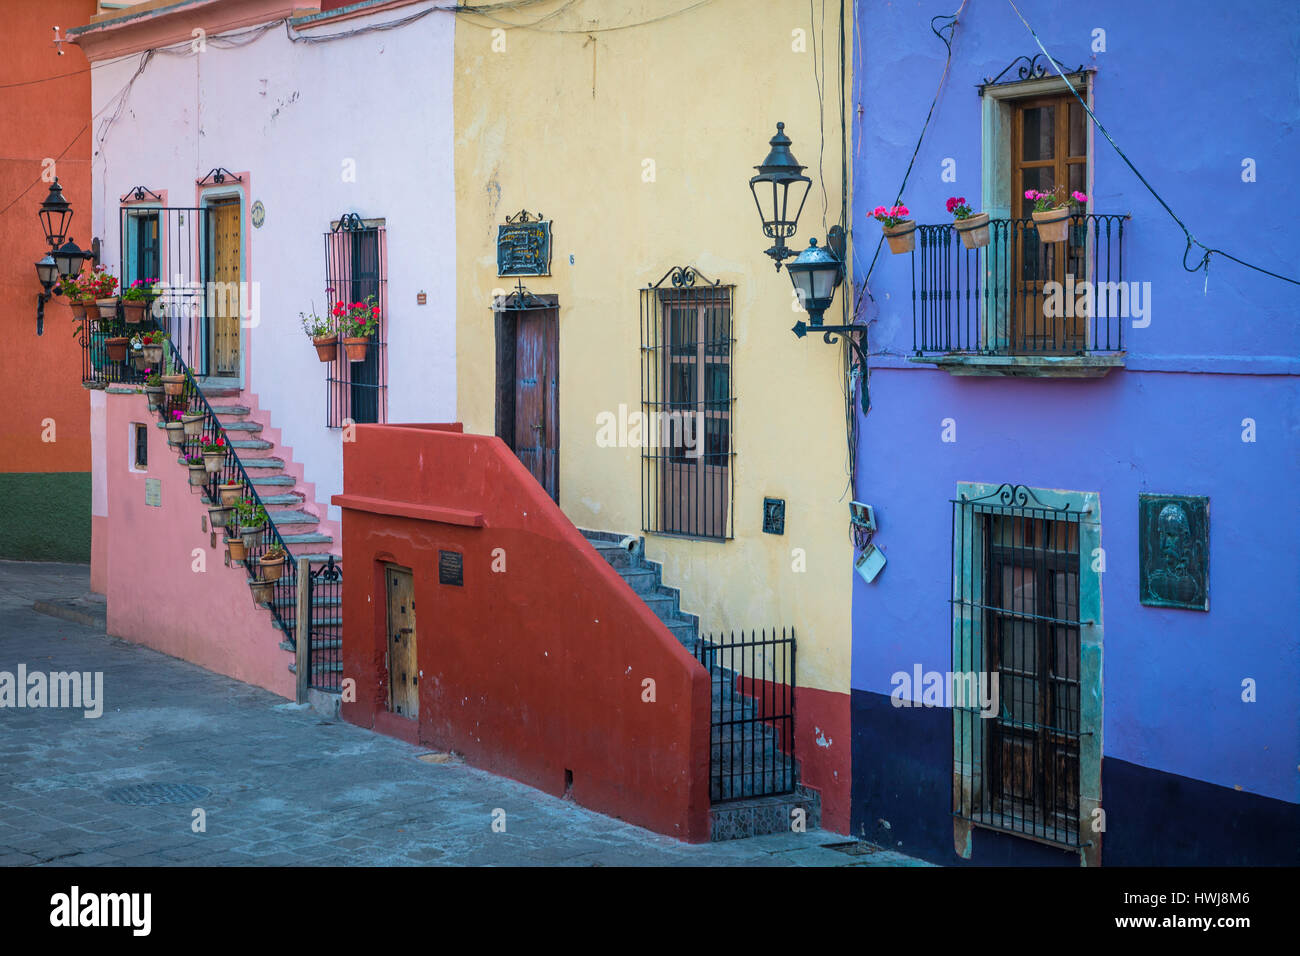 Beautiful staircases at homes in Guanajuato, Mexico ------ Guanajuato is a city and municipality in central Mexico - Stock Image